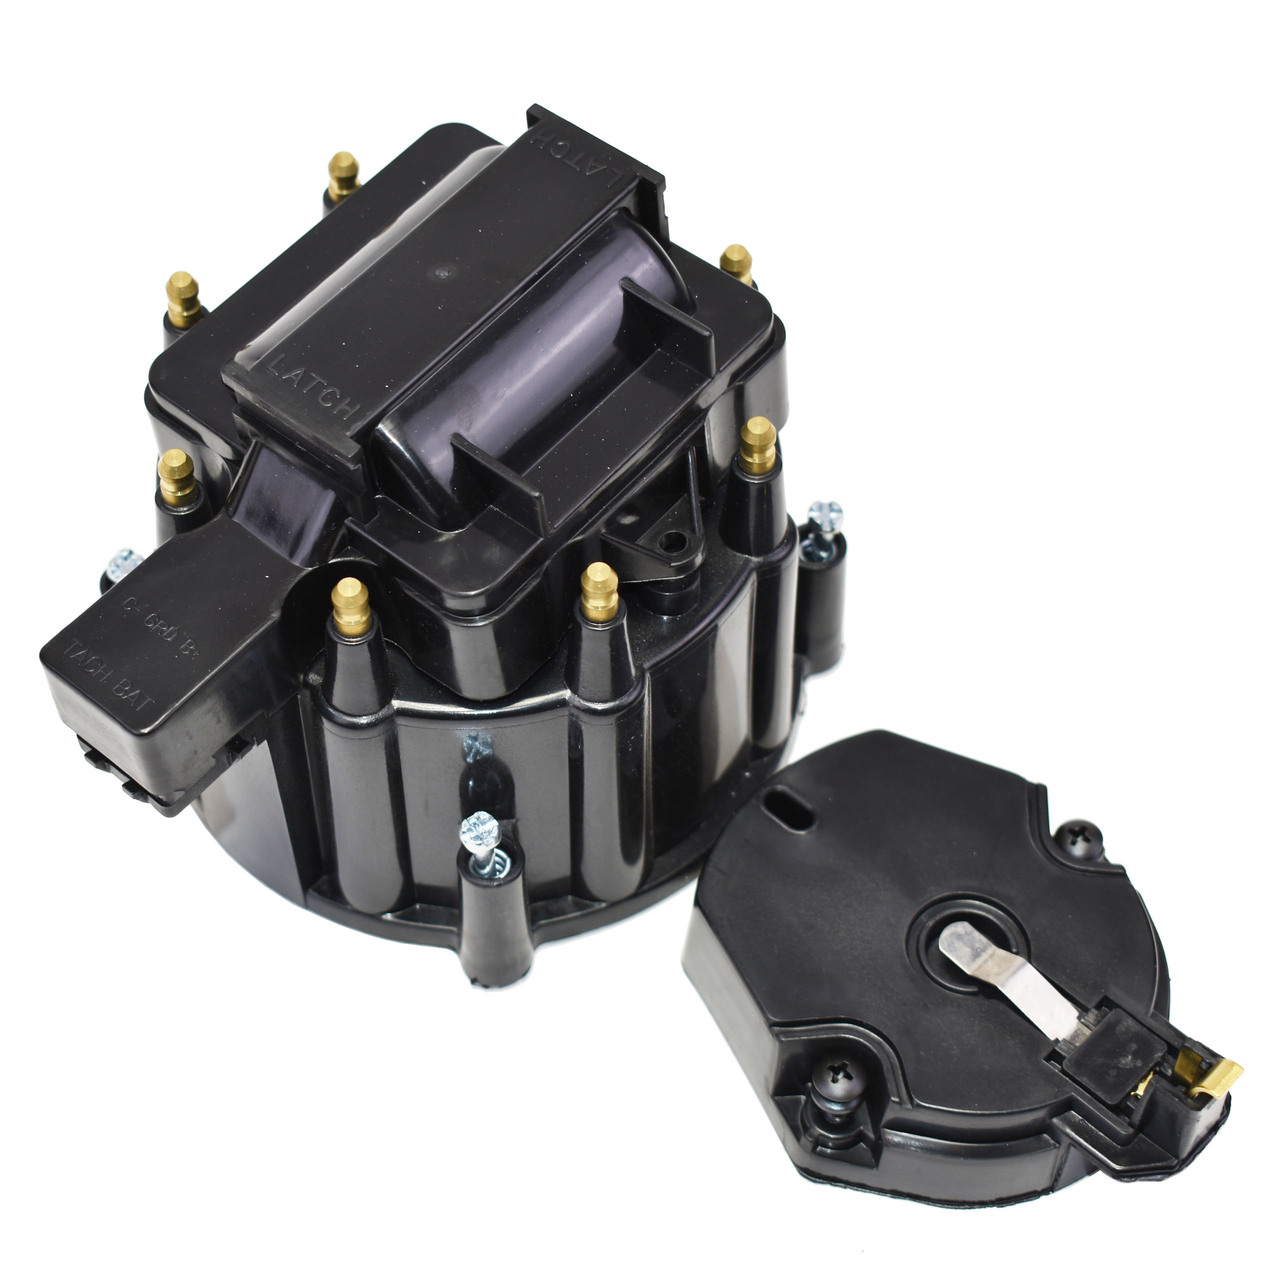 A-Team Performance HEI Distributor Tune-Up Kit 8-Cylinder 65K Ignition Coil Male Cap (Black)